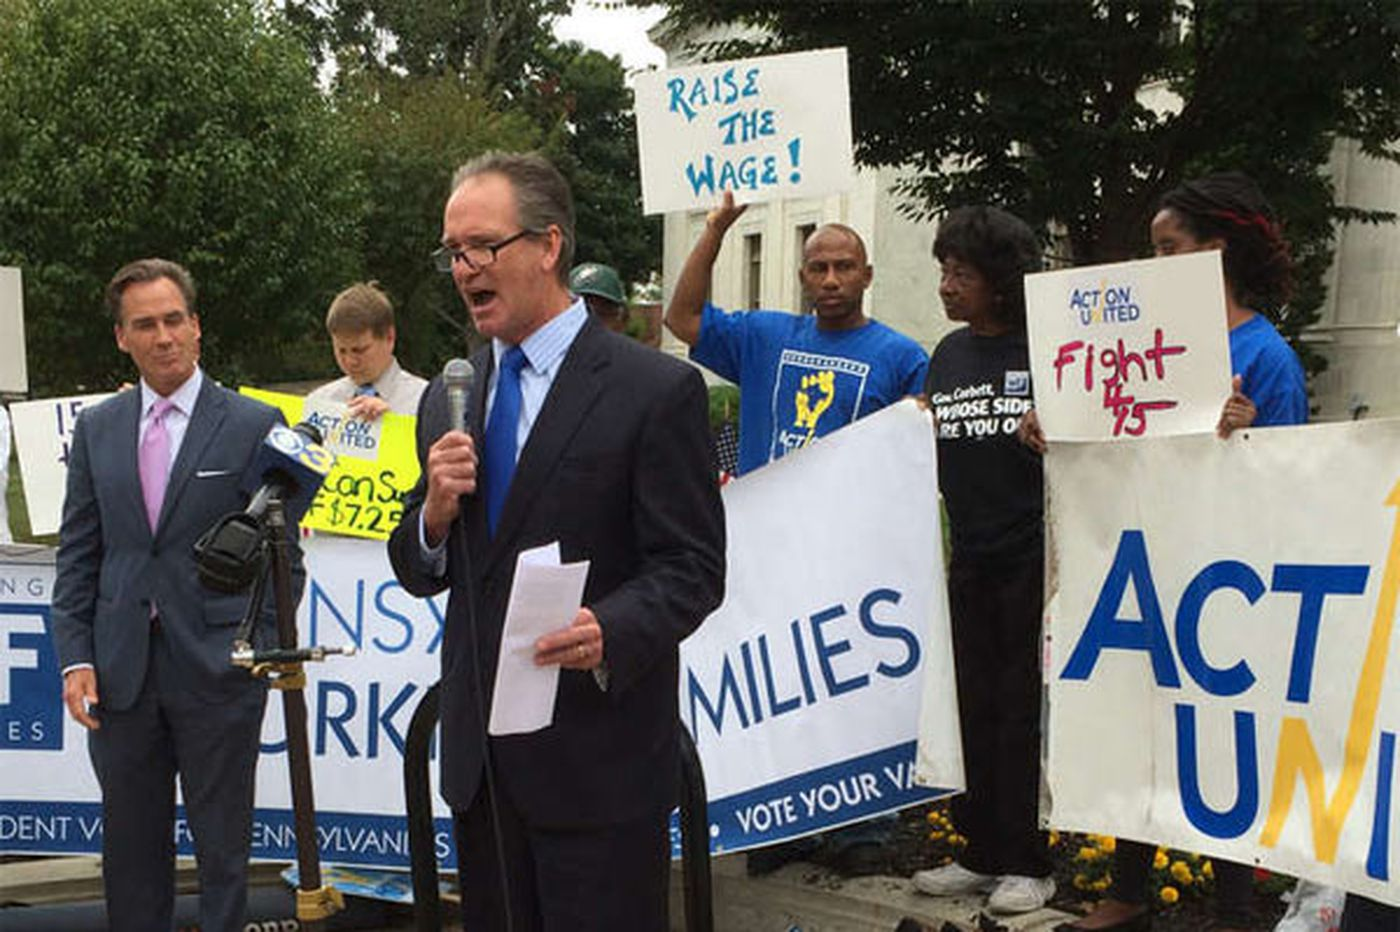 Dems, unions, others rally for hiking minimum wage